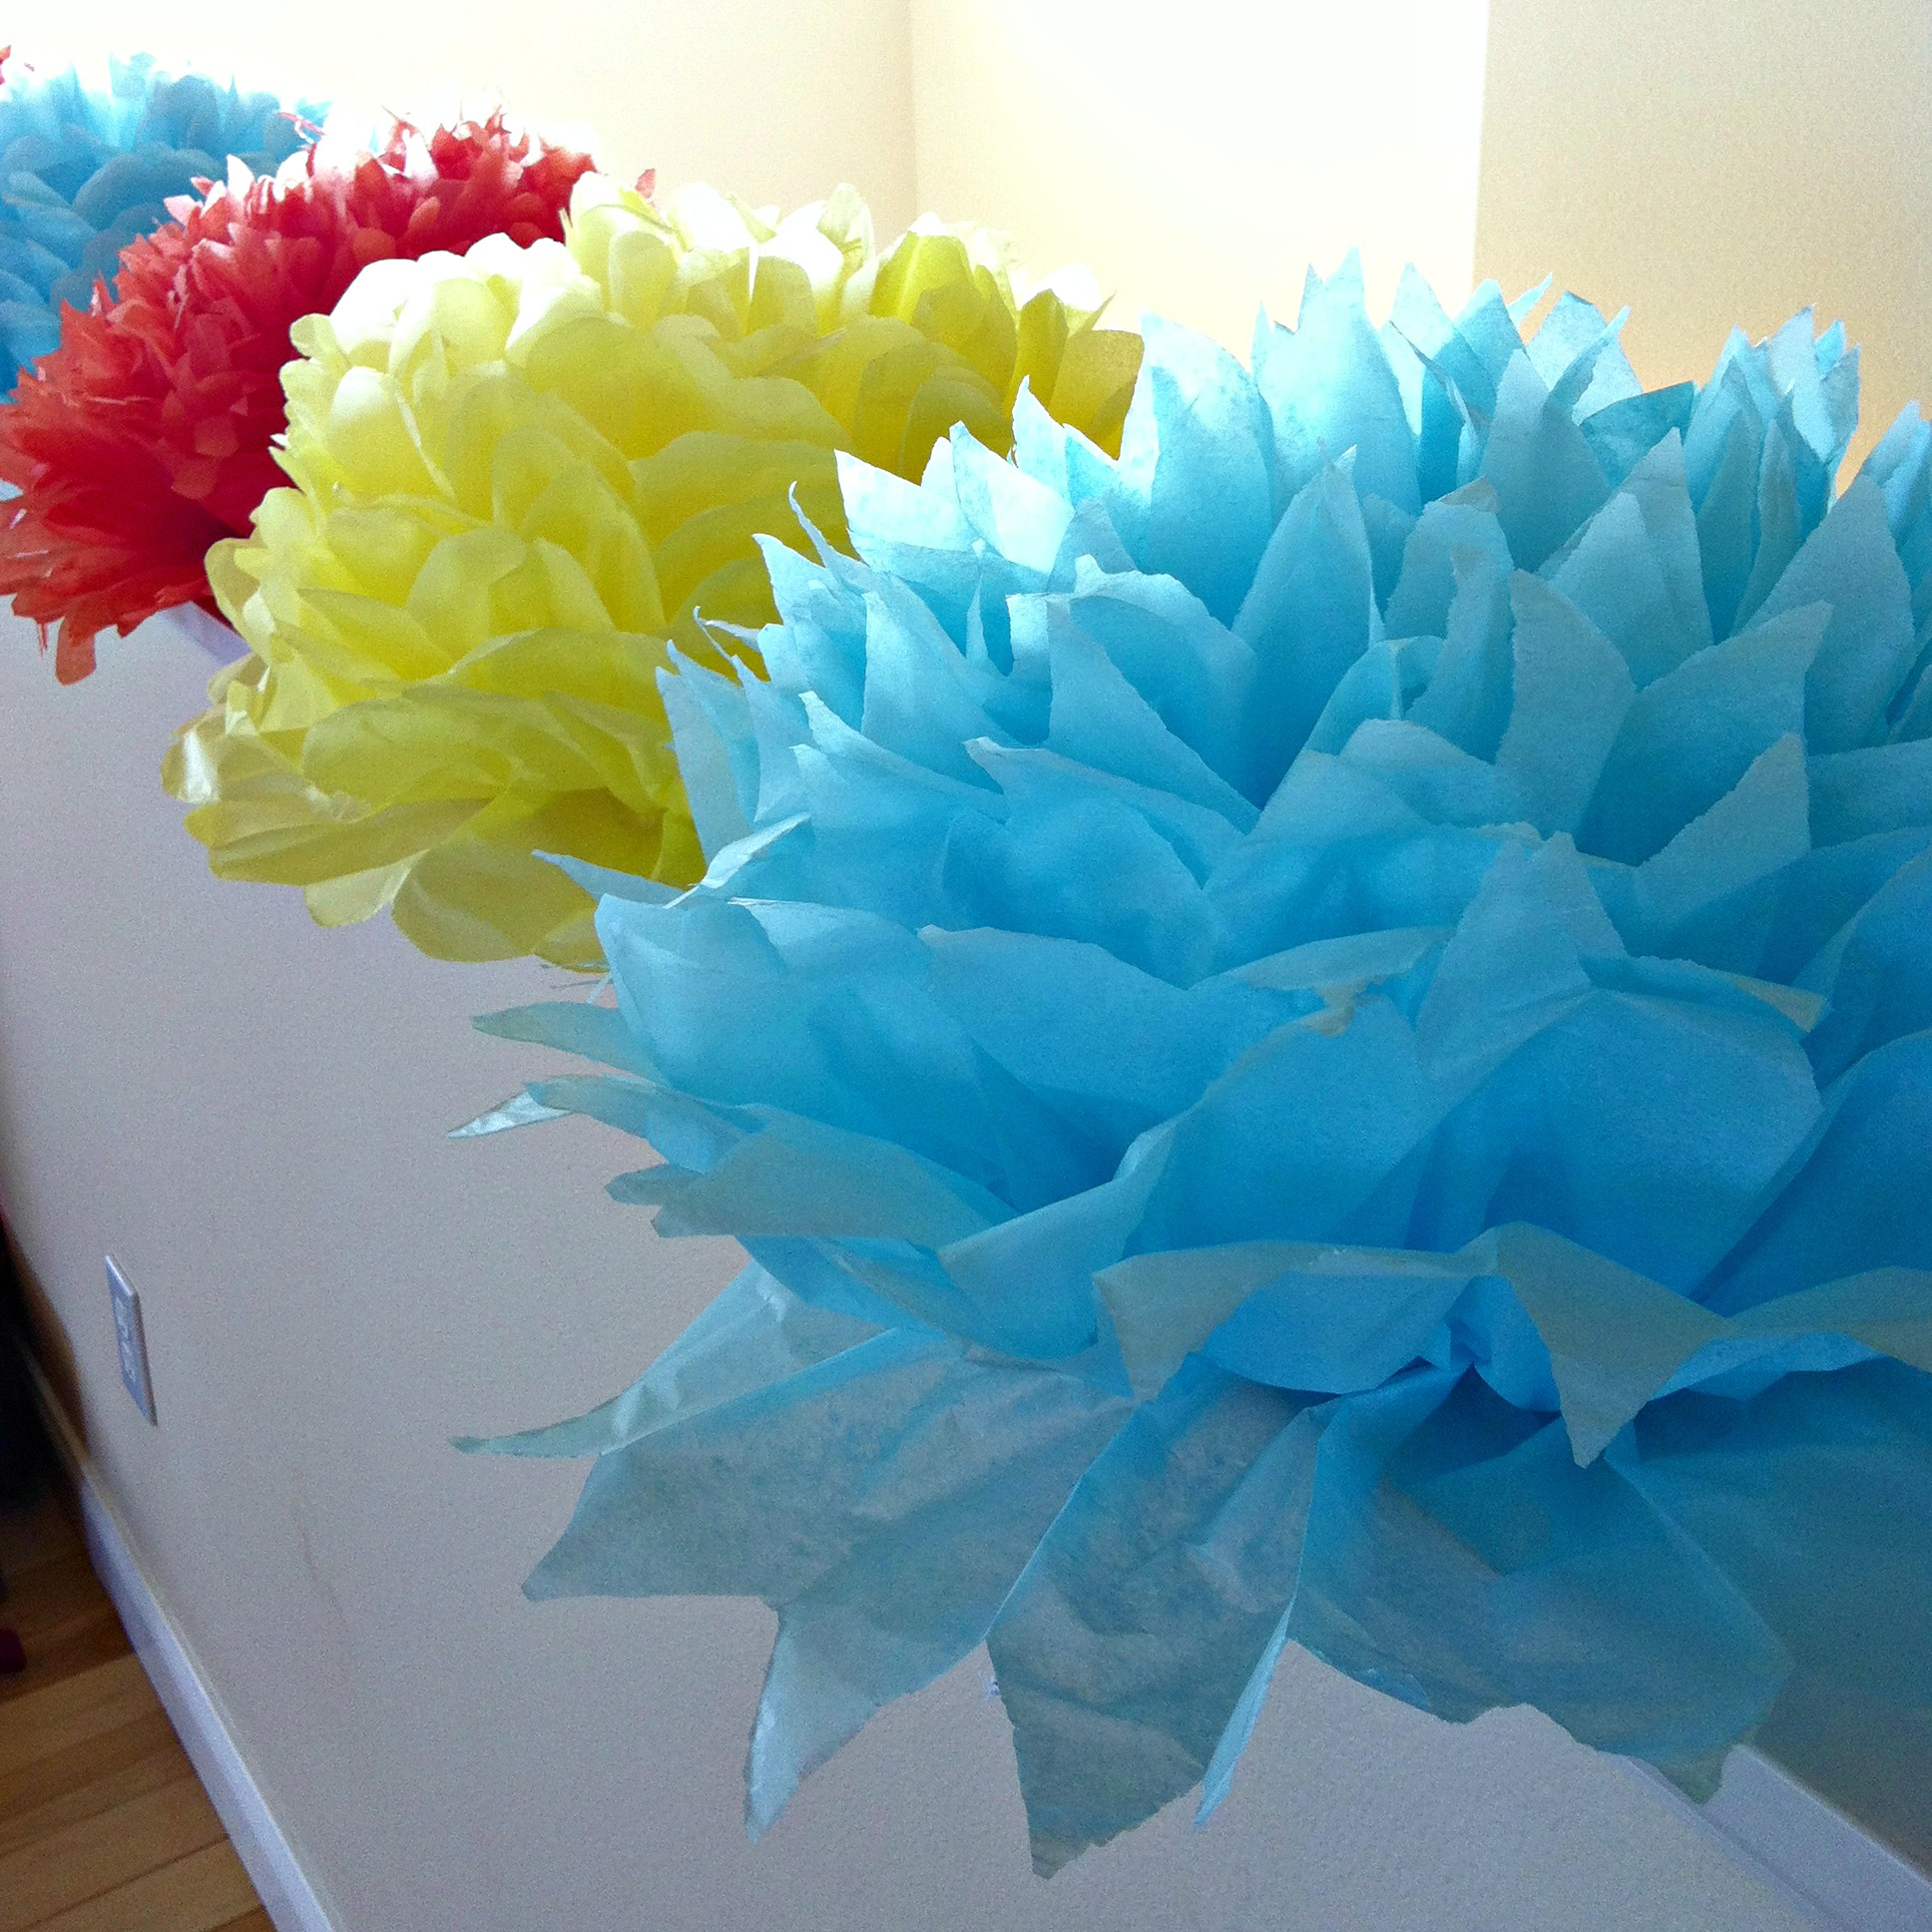 DIY Giant Handmade Tissue Paper Flowers Tutorial 2 for $1.00 Make Beautiful Birthday Party Decorations Final 2